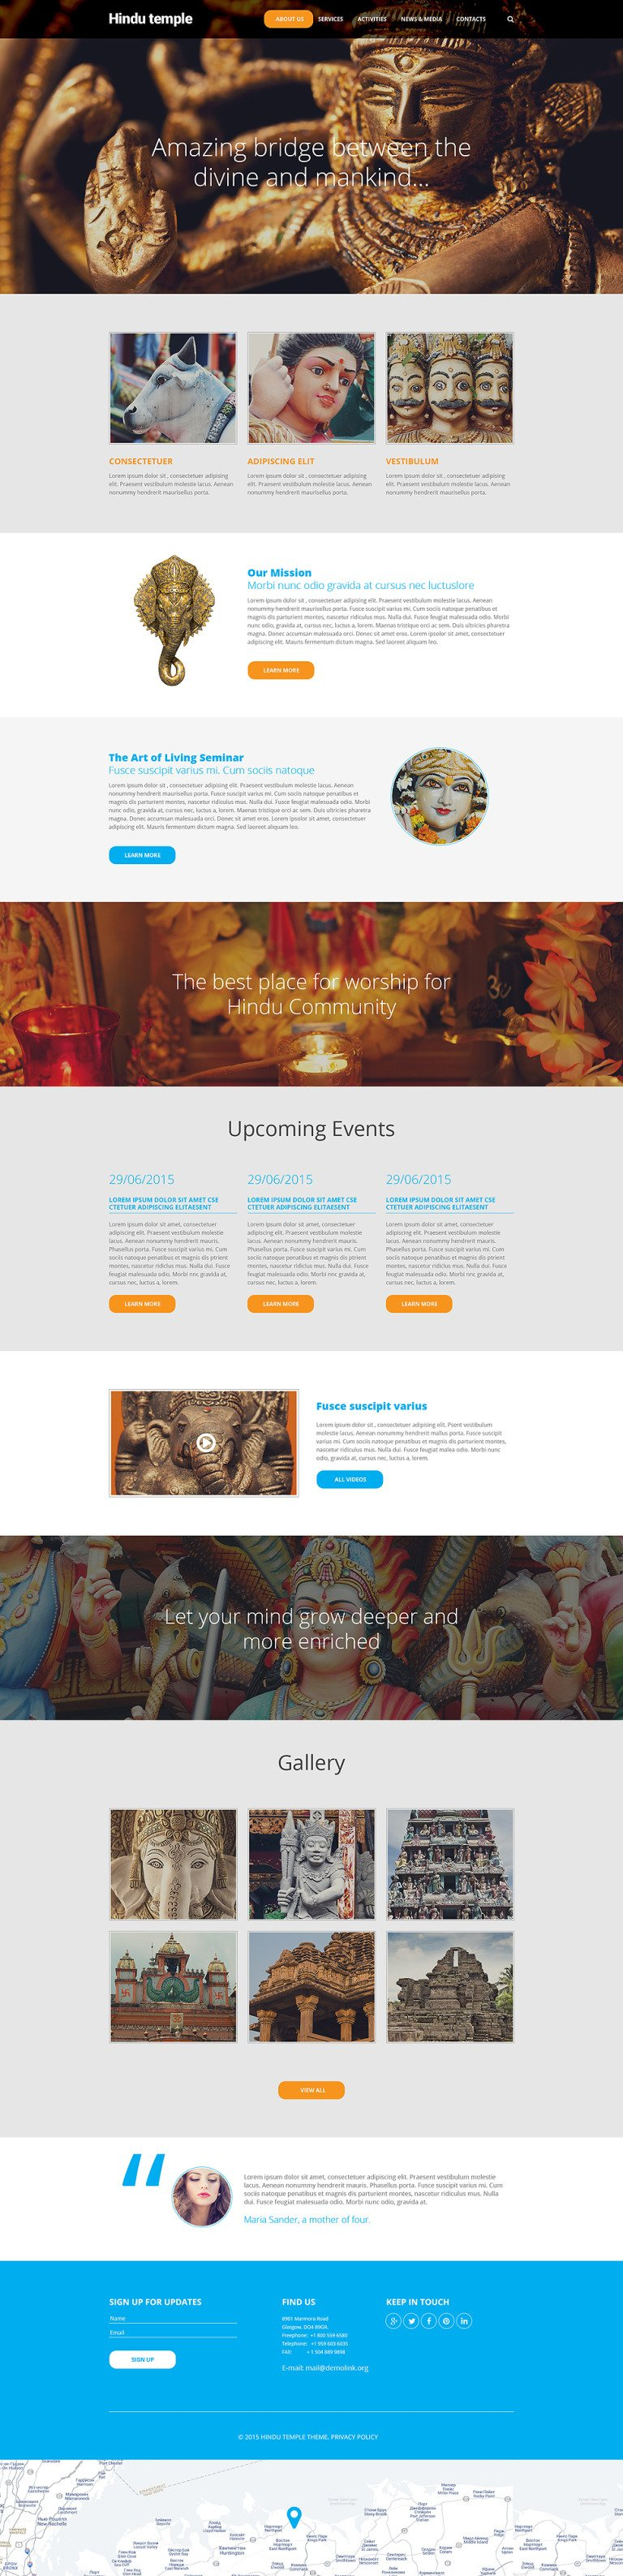 Hindu Temple Website Template New Screenshots BIG